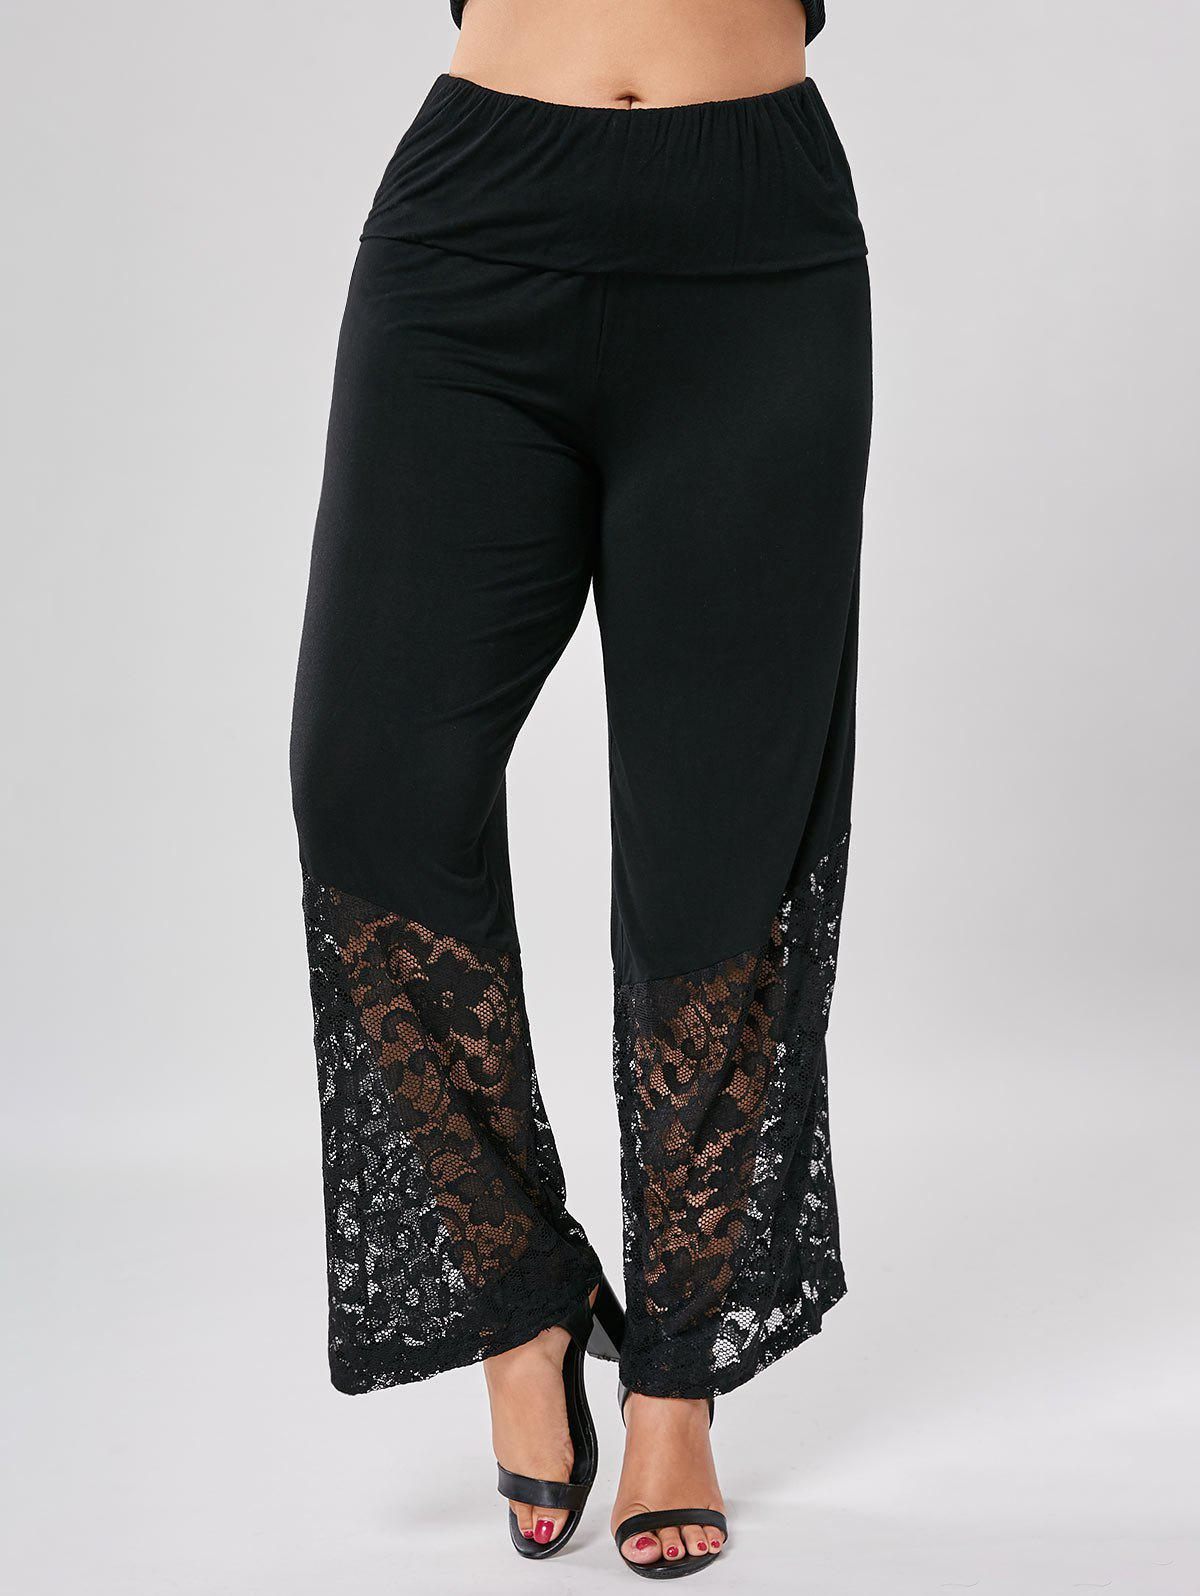 Plus Size Lace Trim Wide Leg PantsWOMEN<br><br>Size: 5XL; Color: BLACK; Style: Casual; Length: Normal; Material: Polyester; Fit Type: Loose; Waist Type: High; Closure Type: Elastic Waist; Front Style: Flat; Pattern Type: Solid; Pant Style: Wide Leg Pants; With Belt: No; Weight: 0.4200kg; Package Contents: 1 x Pants;